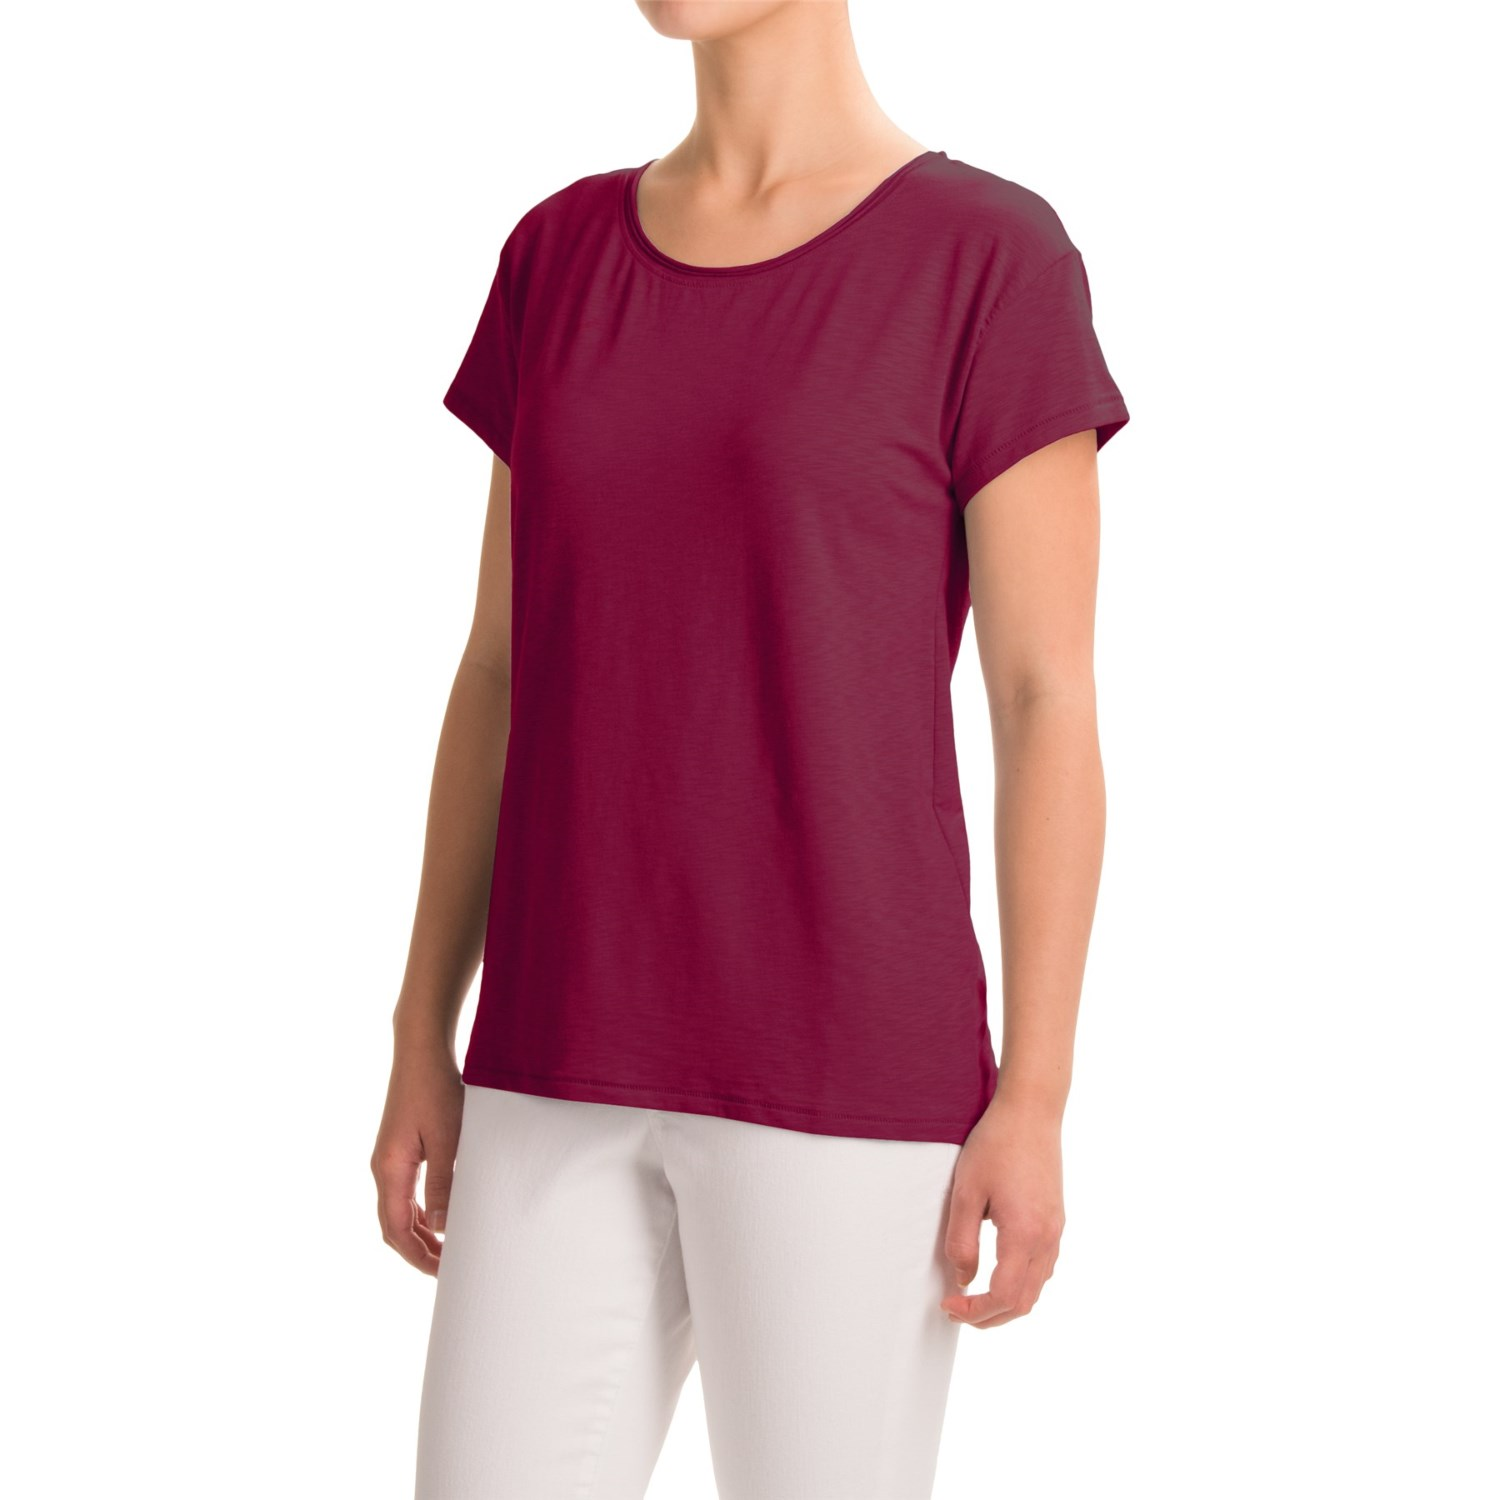 Artisan ny raw edge t shirt for women save 47 for Raw edge t shirt women s